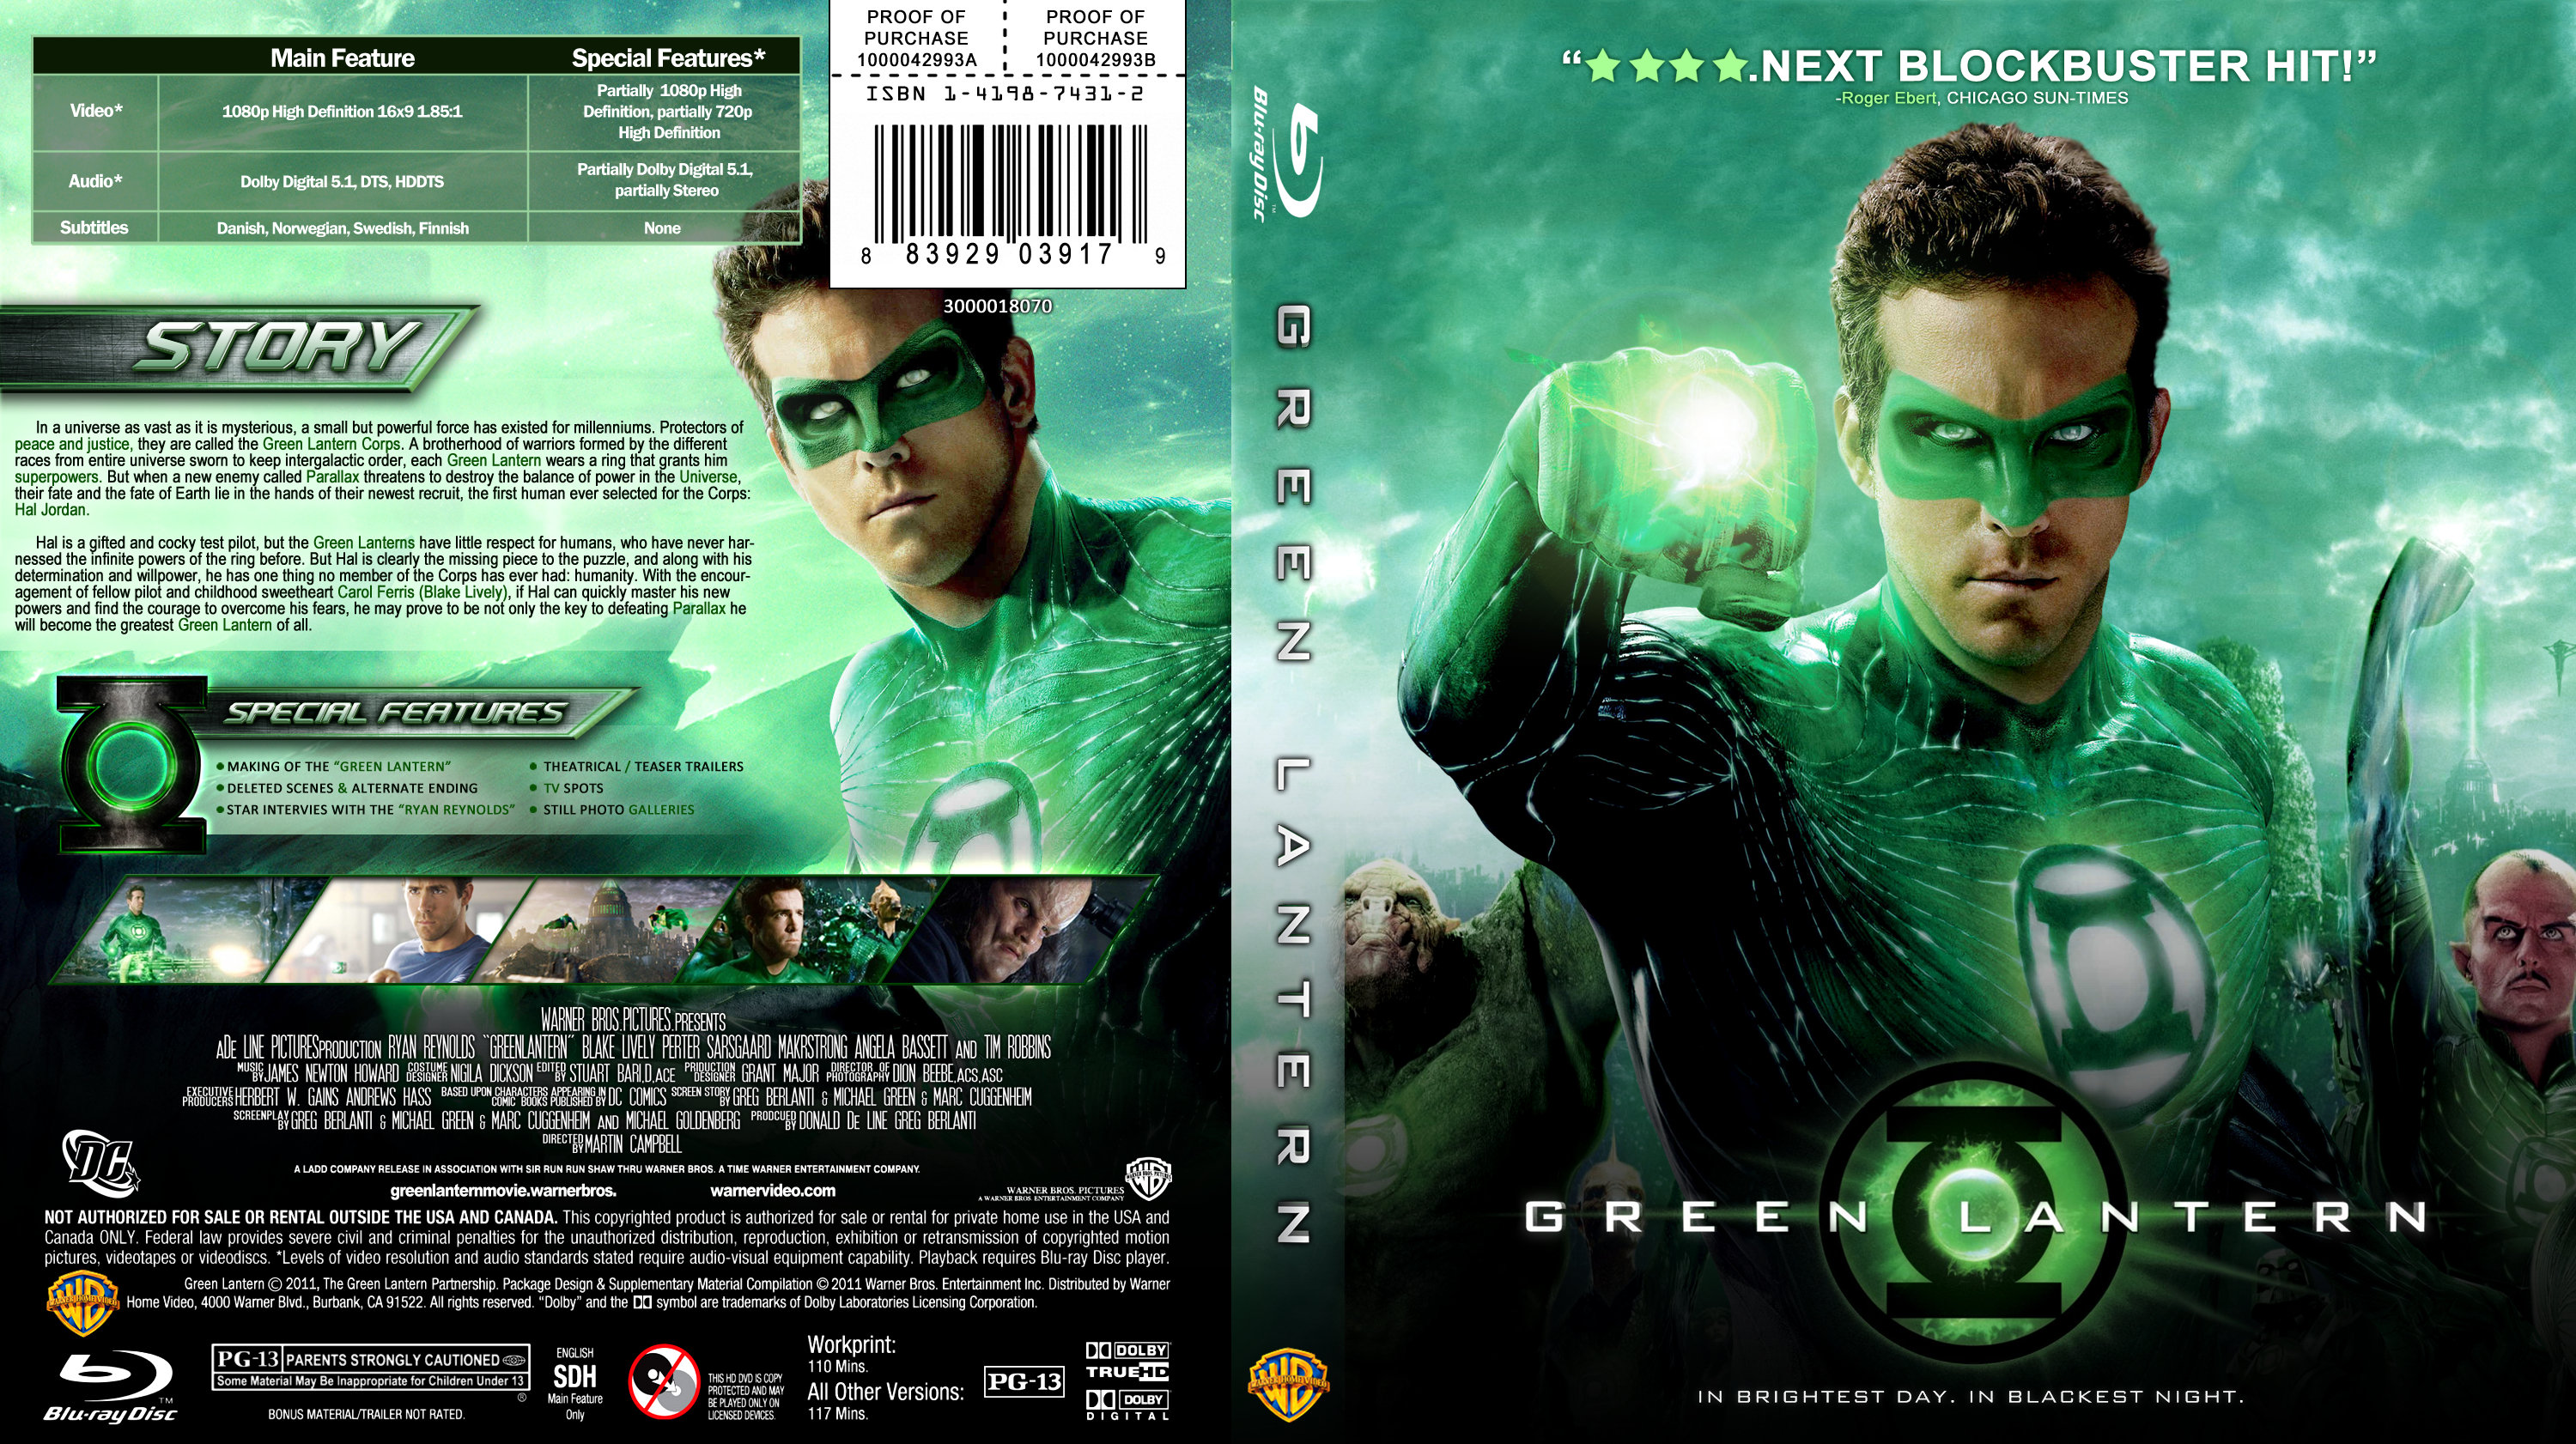 green lantern download avi  m opera 45 download